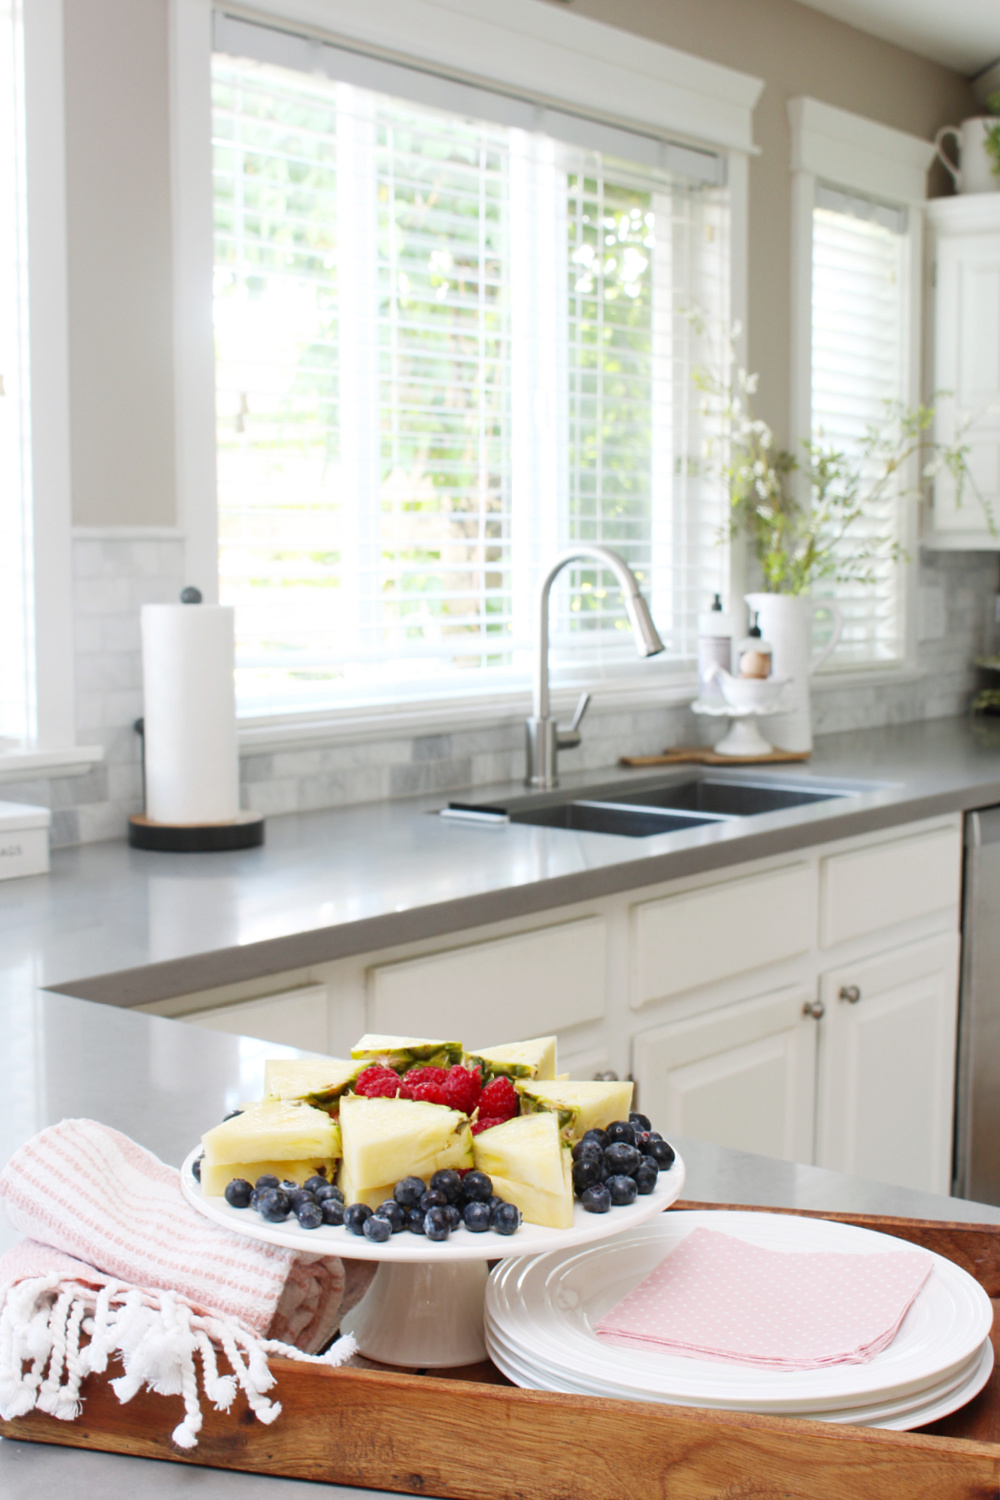 Fruit plate in a white summer kitchen.